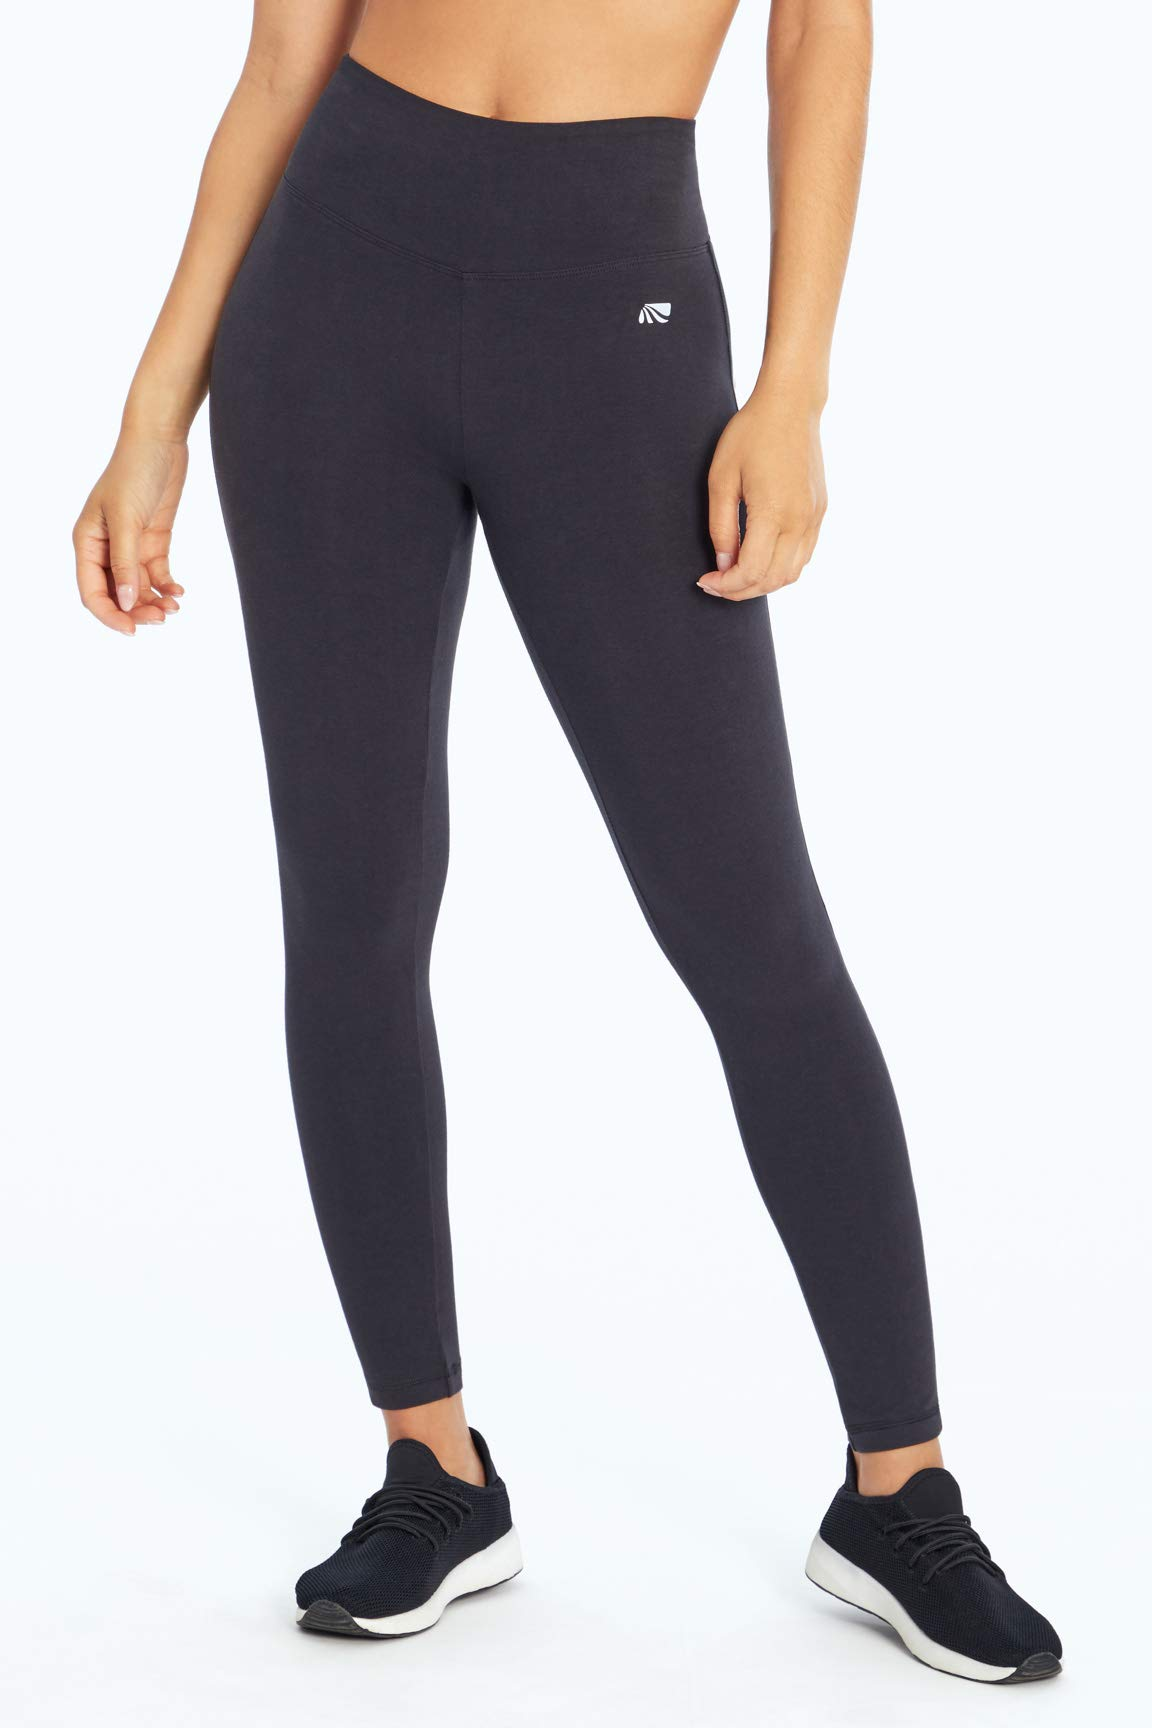 Marika Women's Carrie Tummy Control Legging, Black, Medium